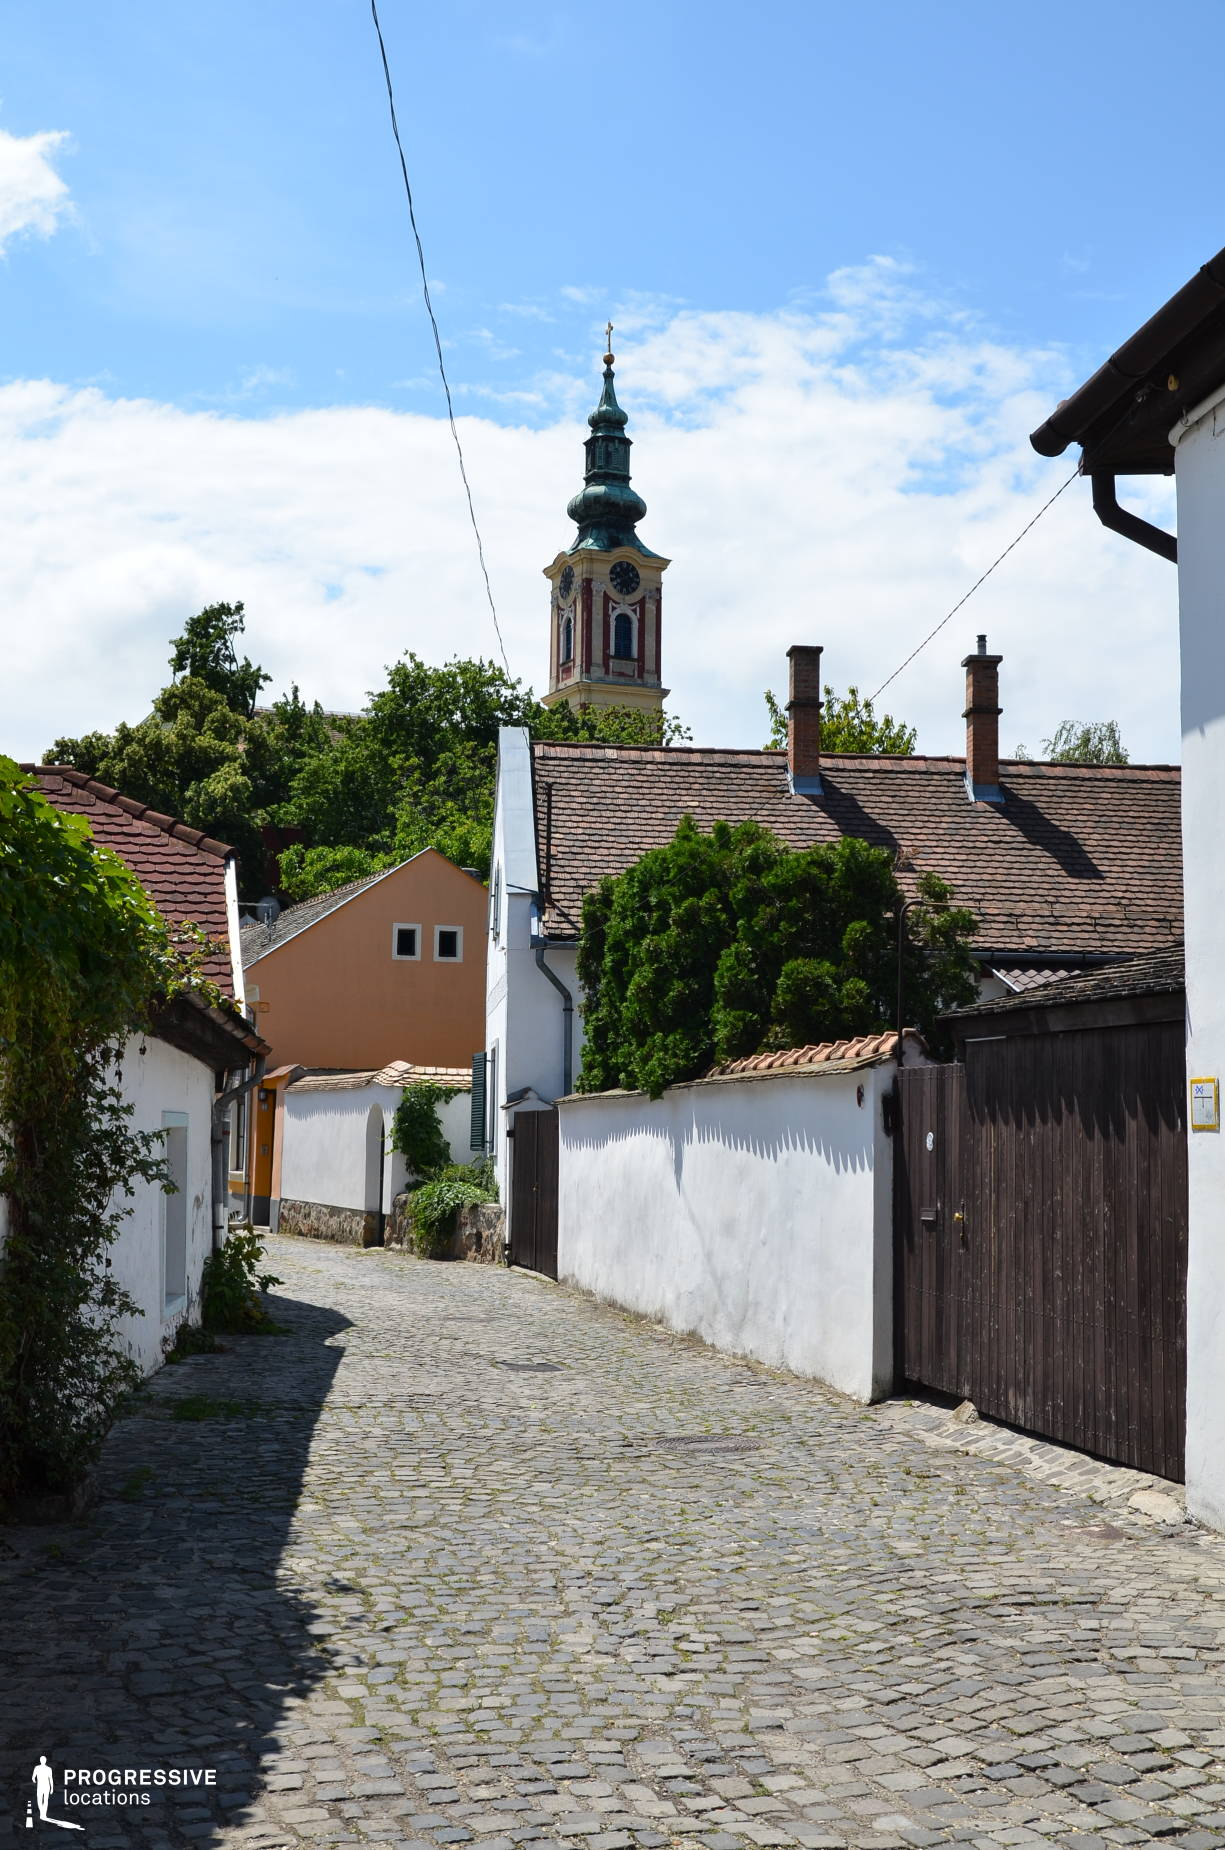 Locations in Hungary: Village Street, Szentendre